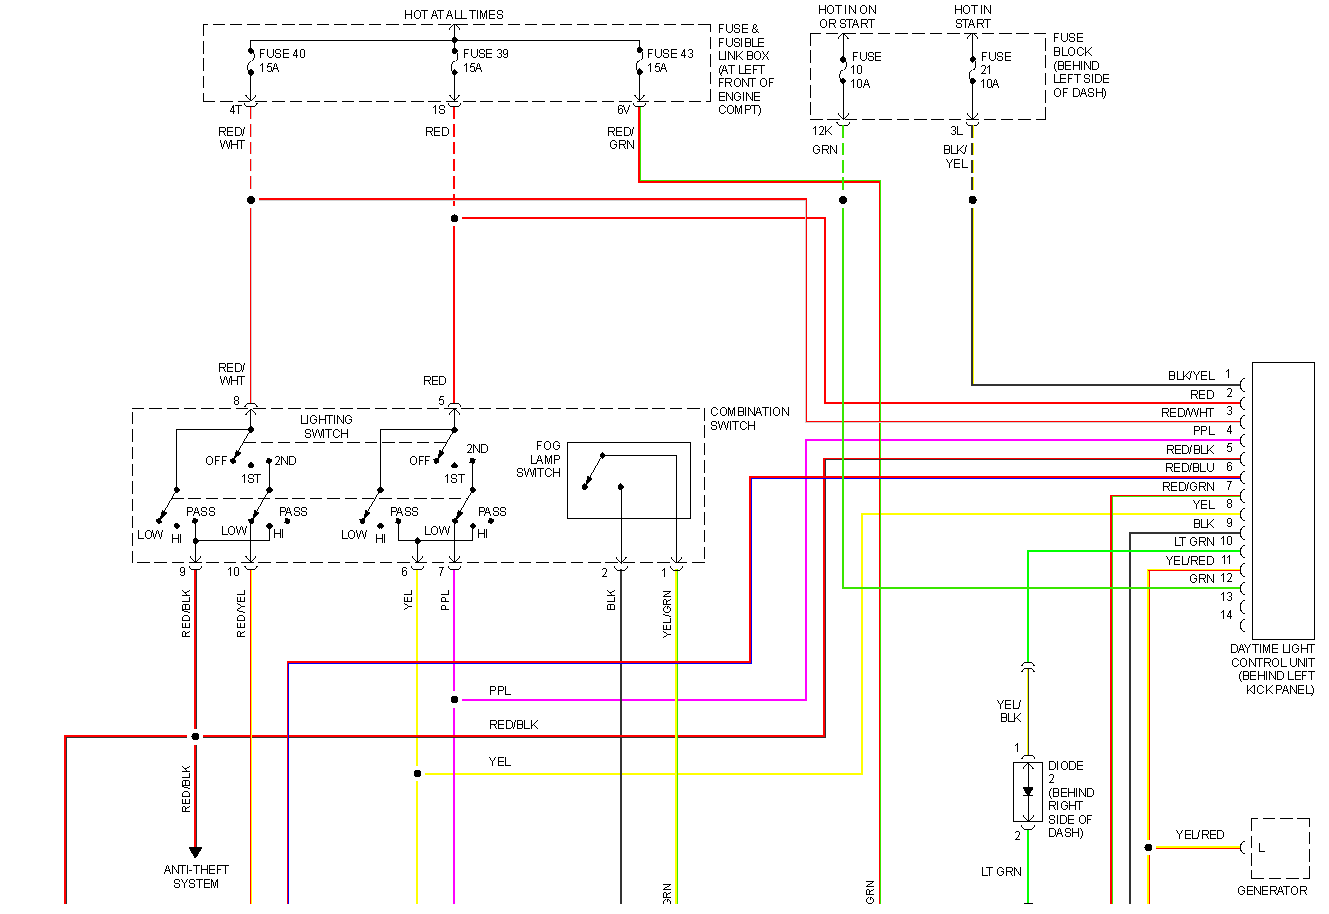 2002 Nissan Sentra Headlight Wiring Diagram 43 2005 2010 01 16 155315 Headlights I Have A Problem With The Lh Low Beam